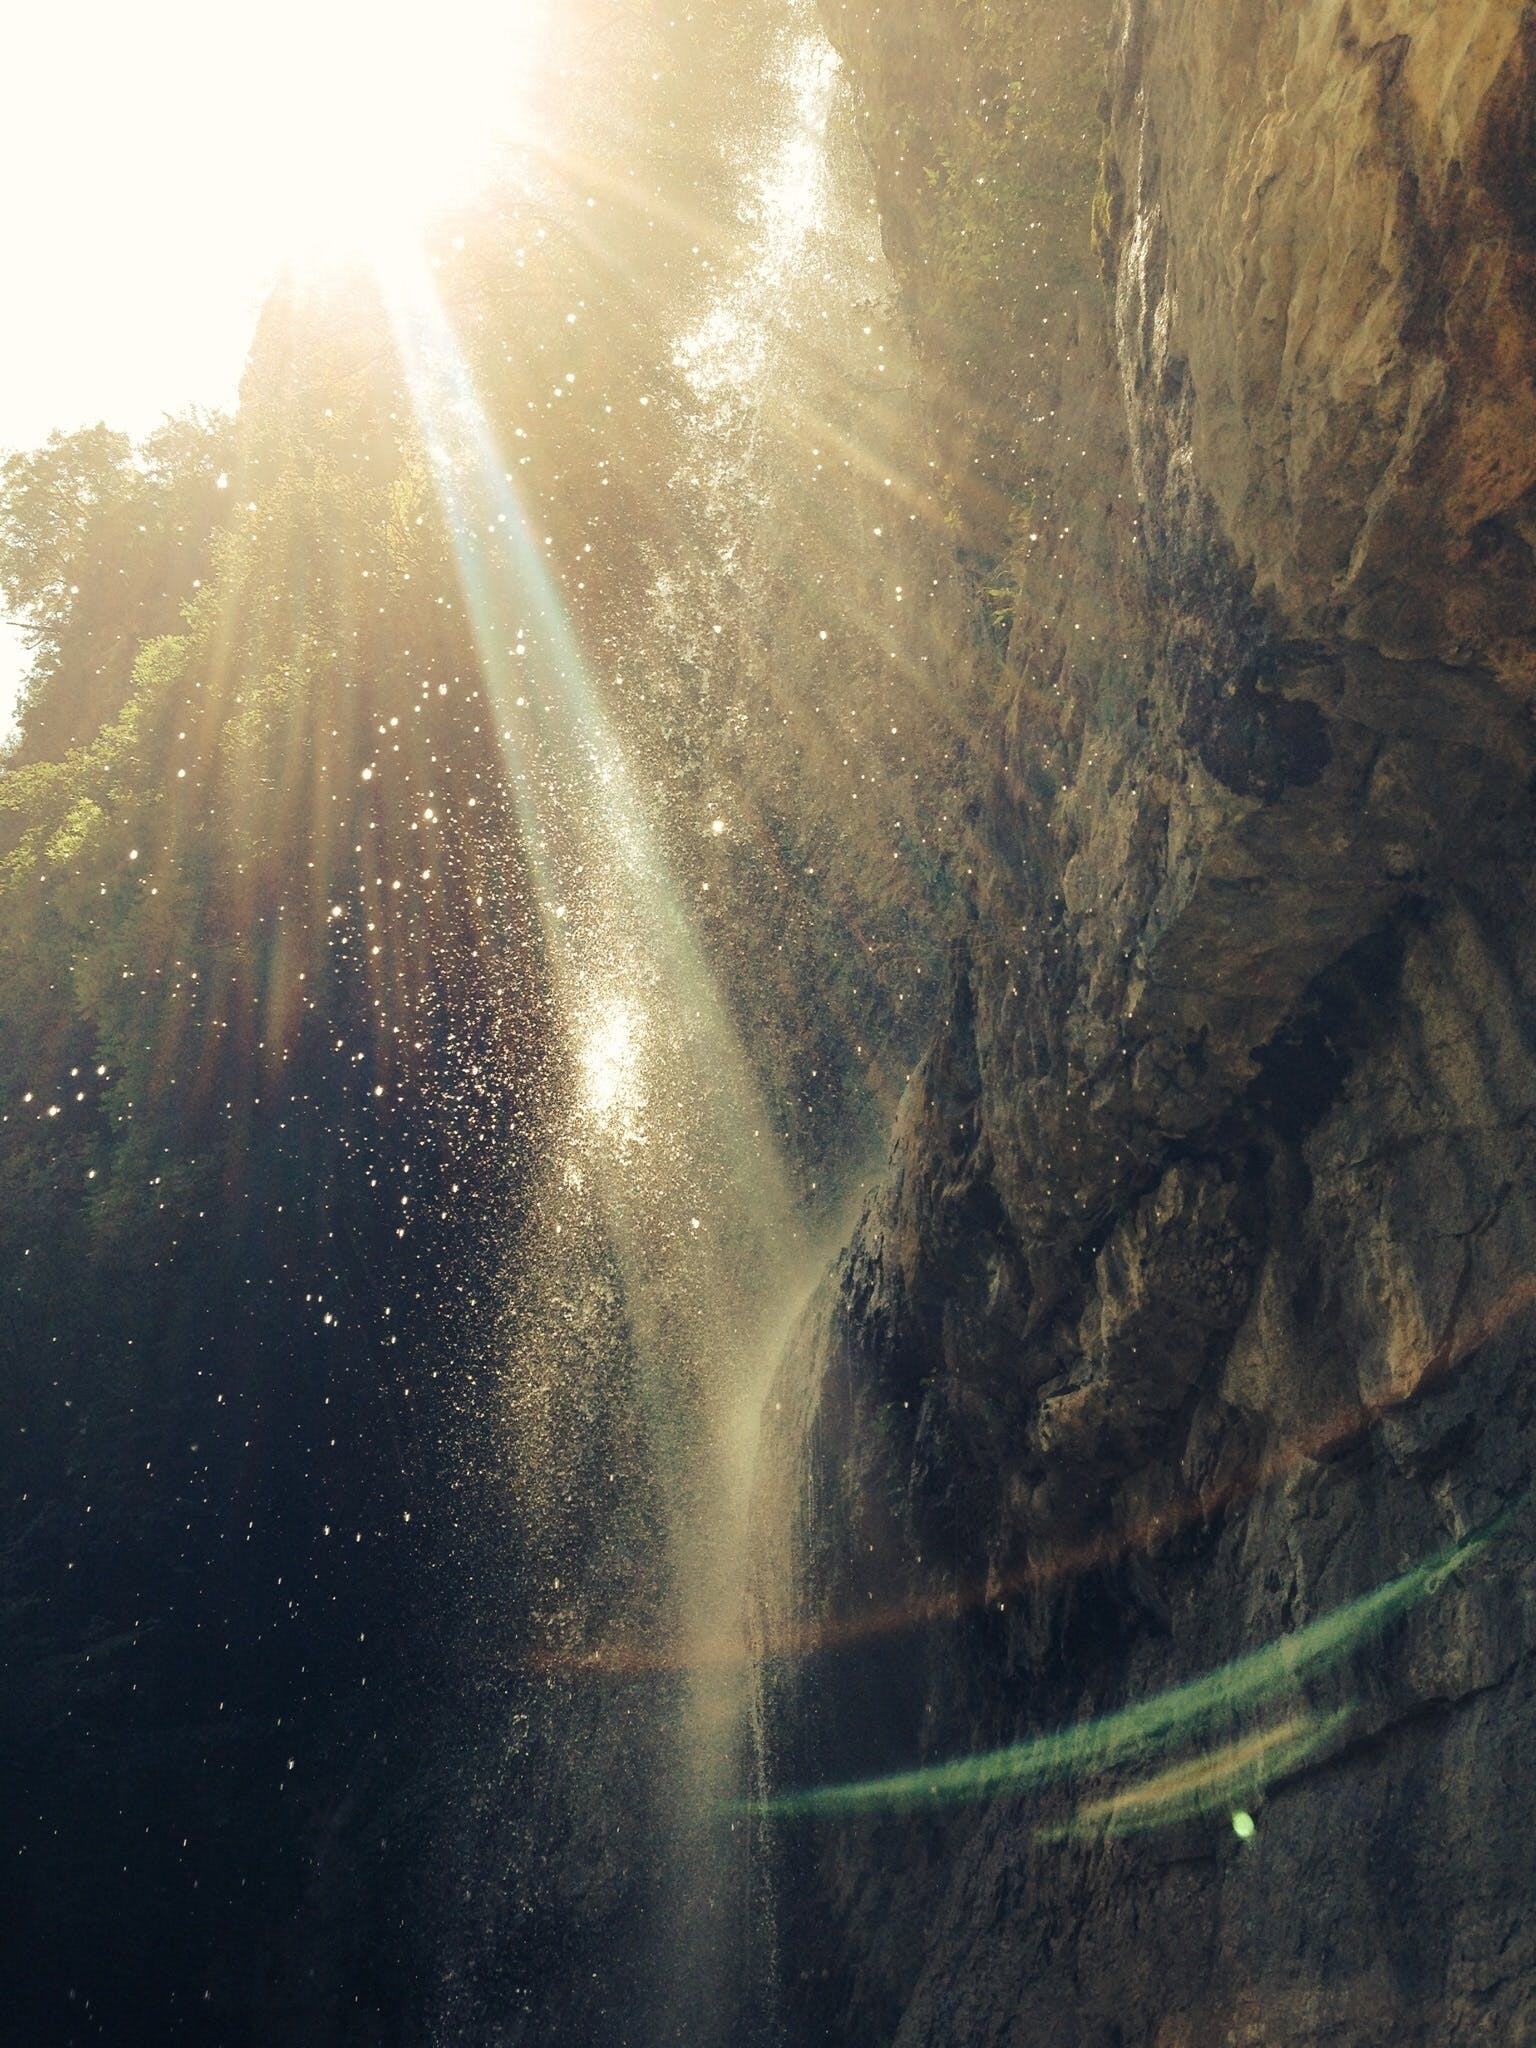 Free stock photo of light, nature, water, wall